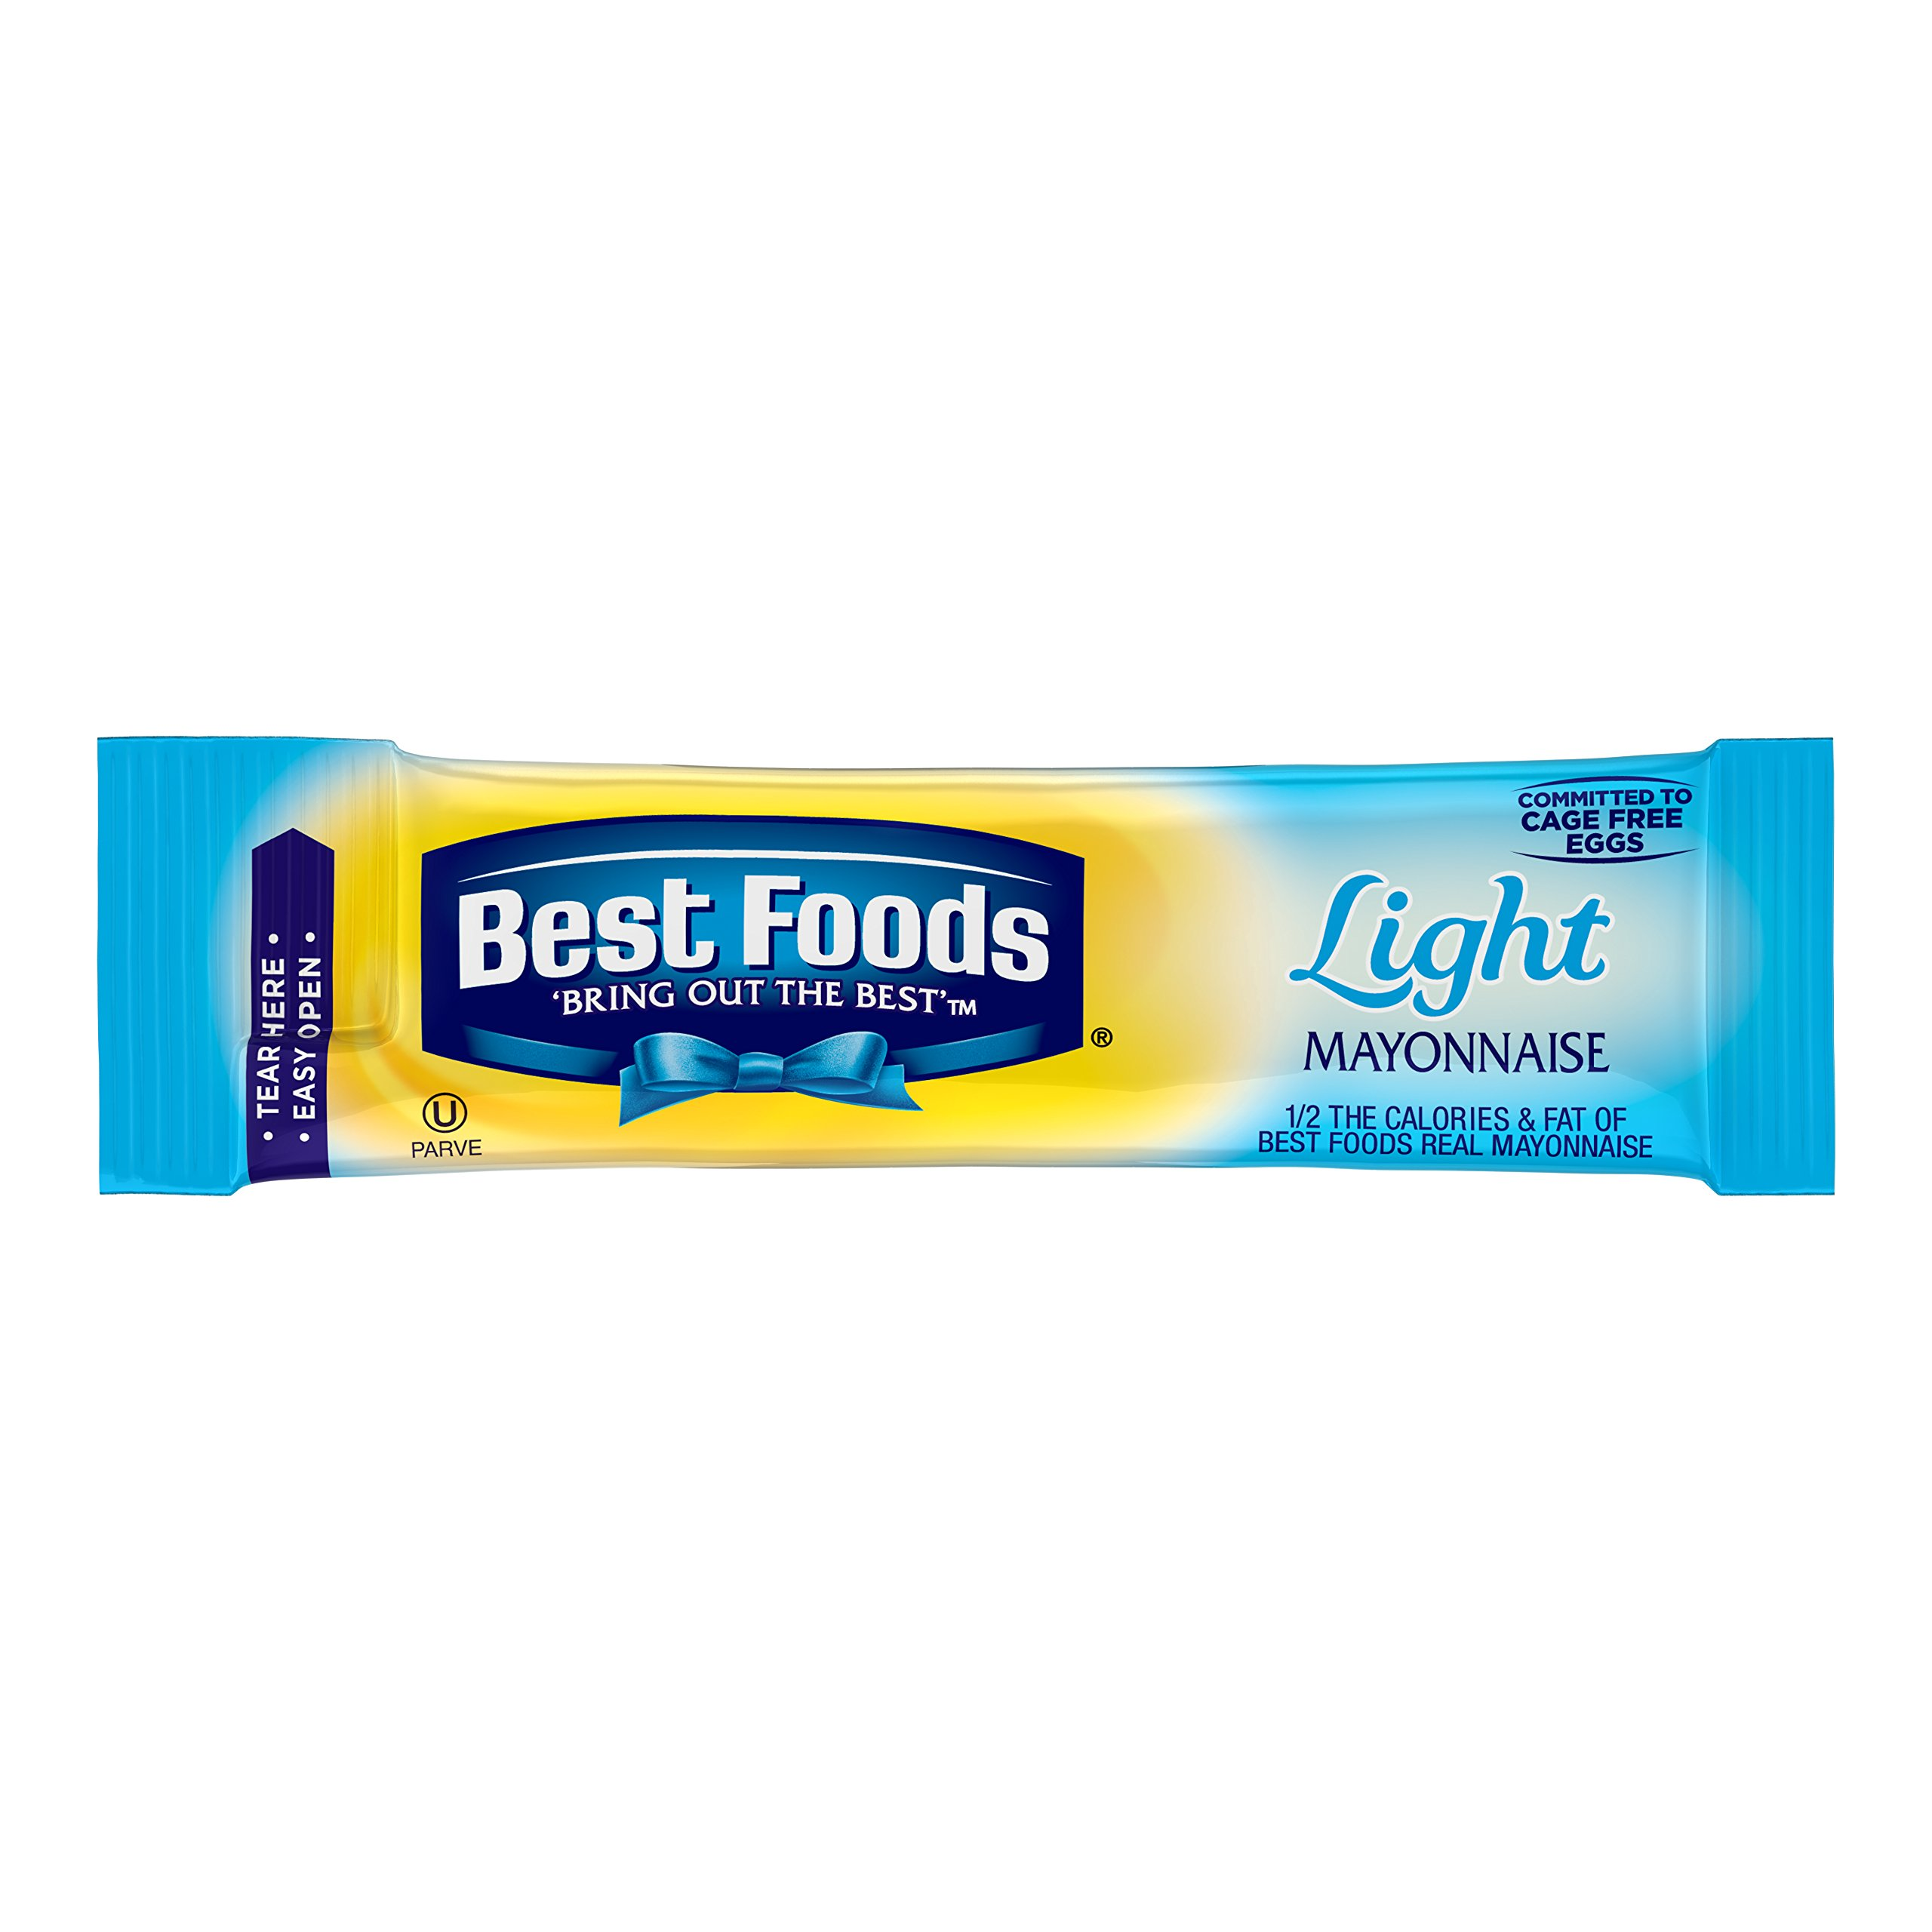 Best Foods Mayonnaise Stick Packets Light 0.38 oz 210ct by Best Foods